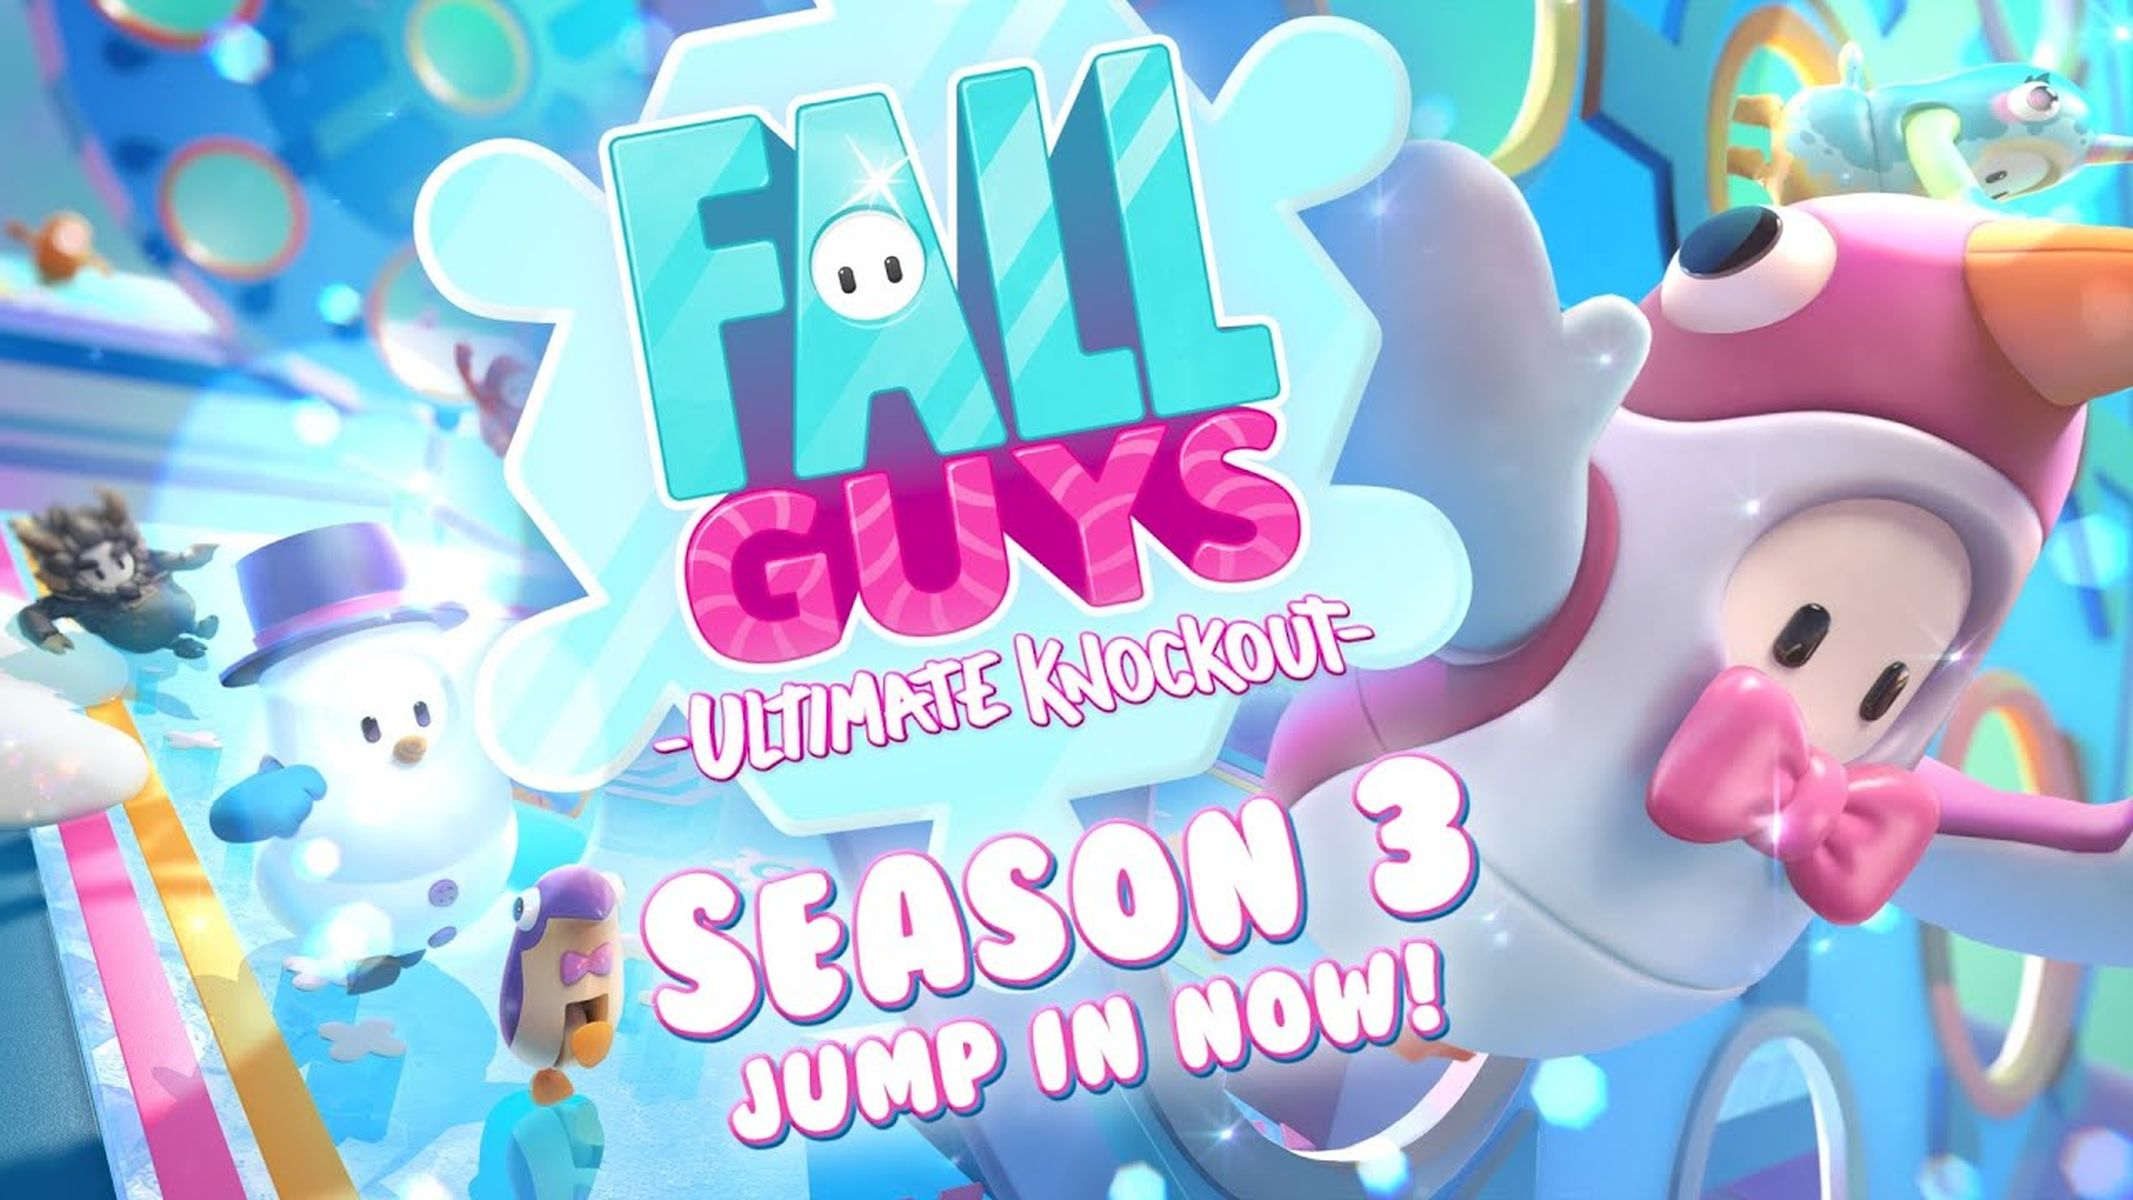 Fall Guys Season 3 Winter Update